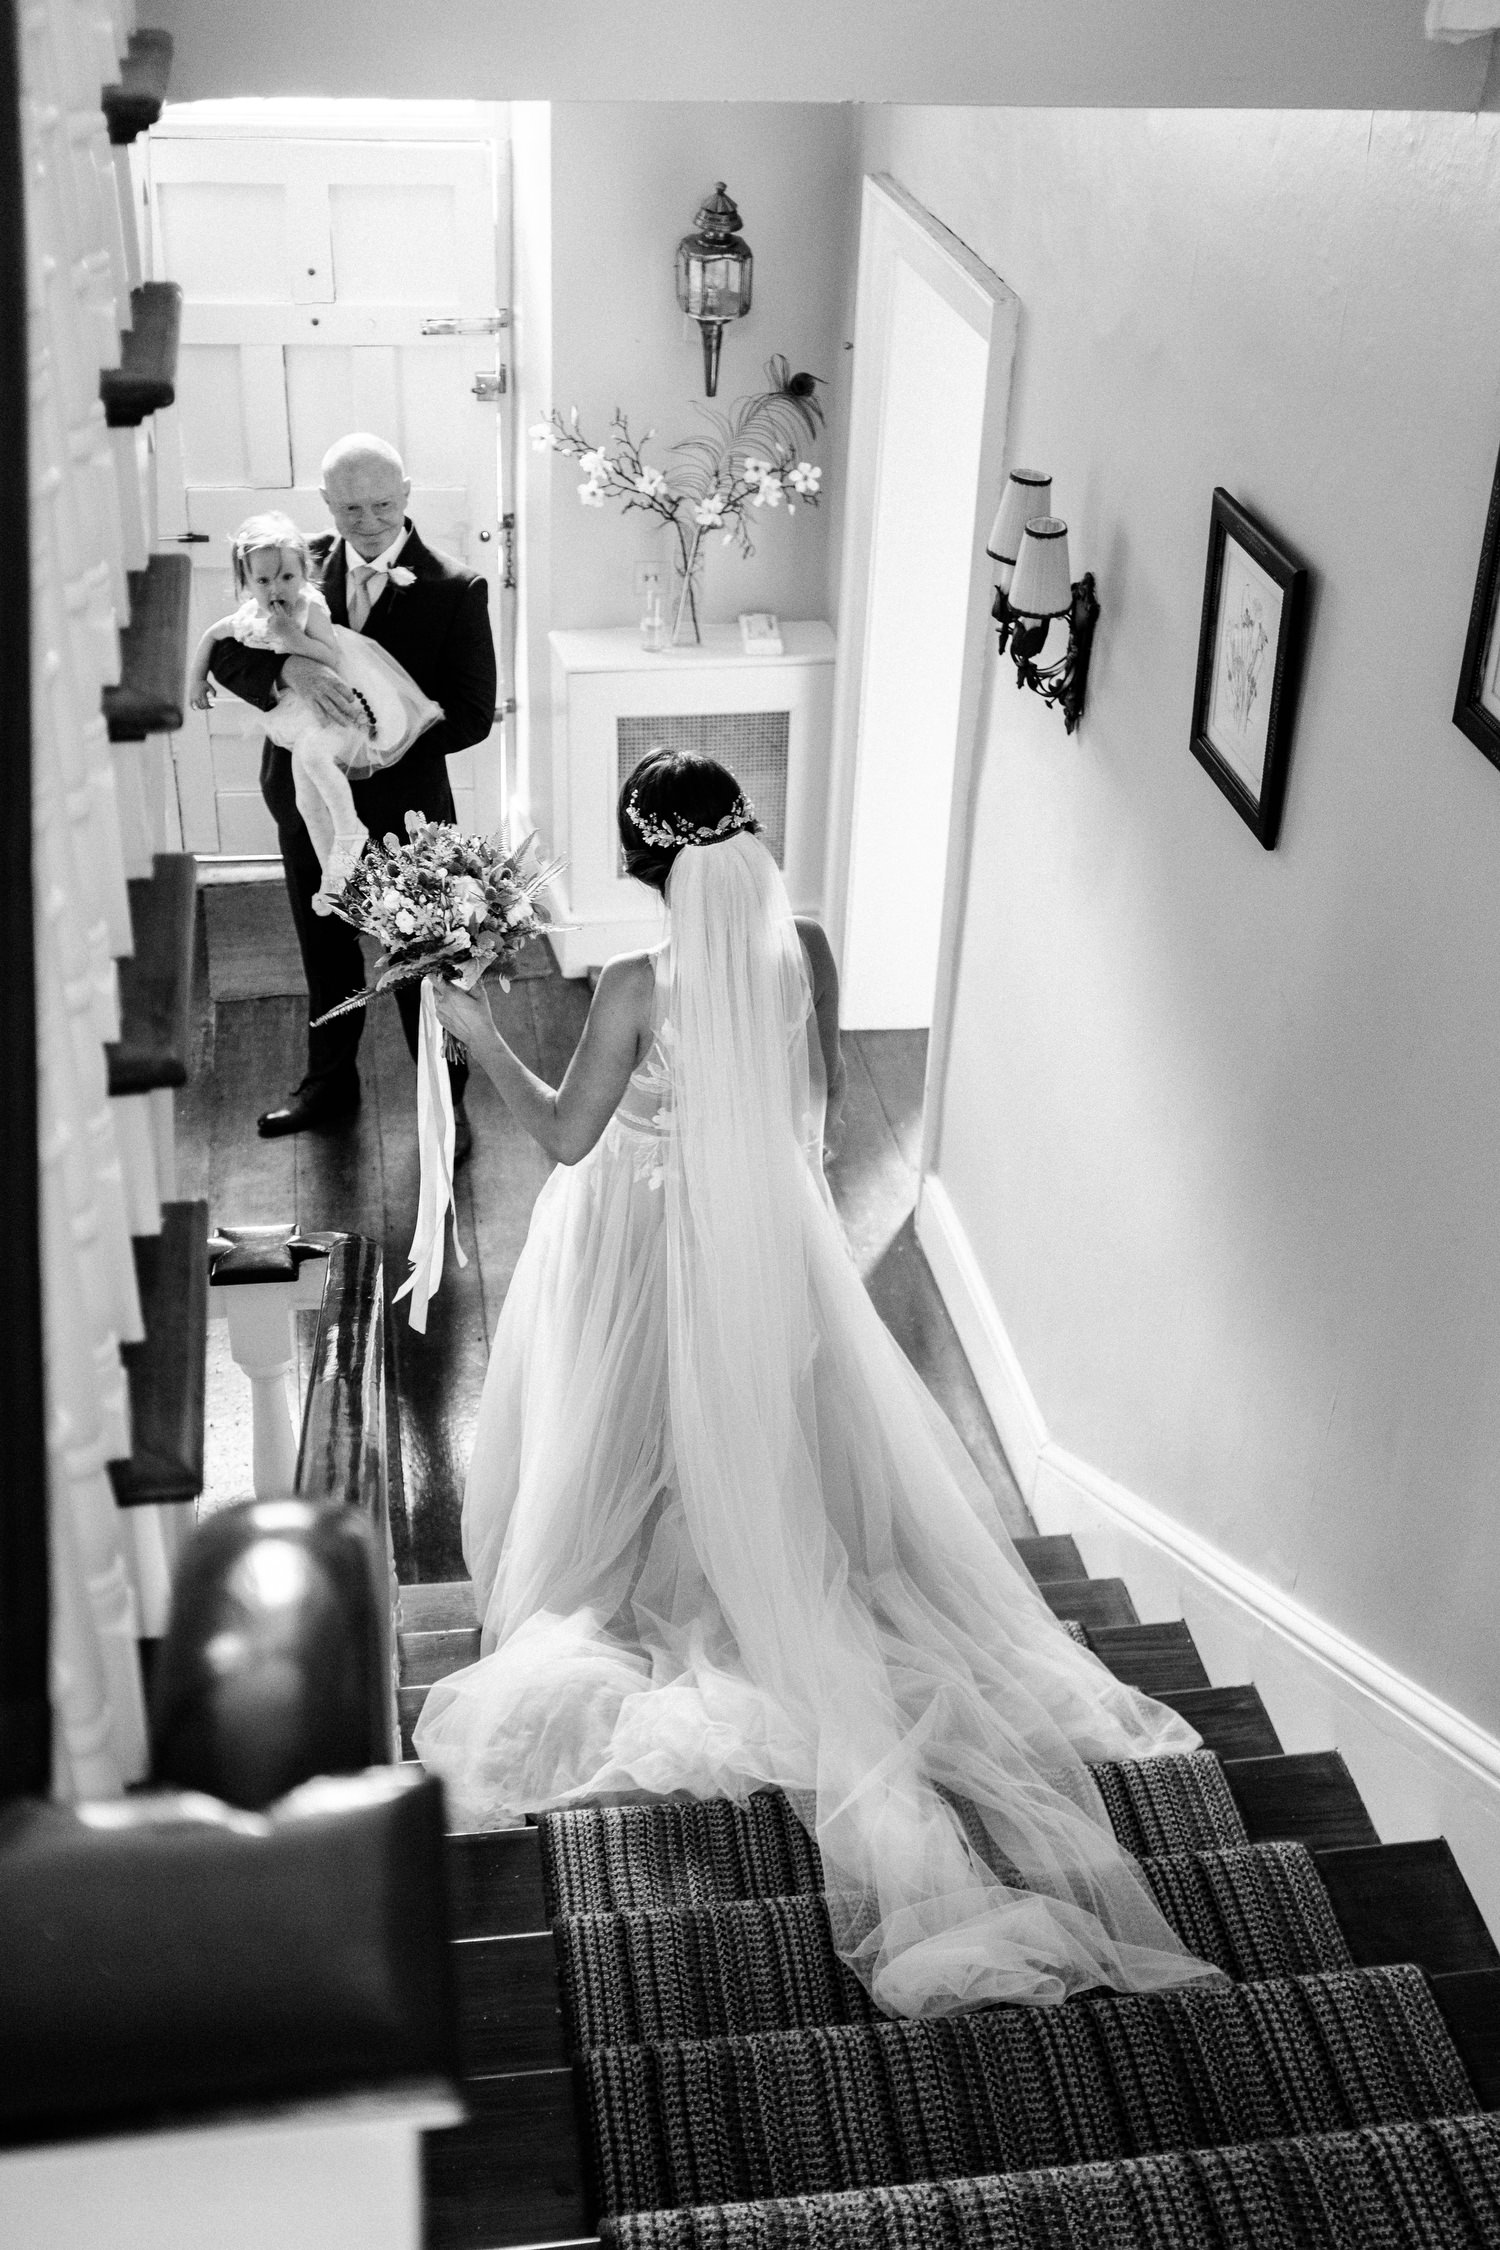 dmp0292_gay_brides_samesex_weddingdress_laois_ireland_preparation_wedding